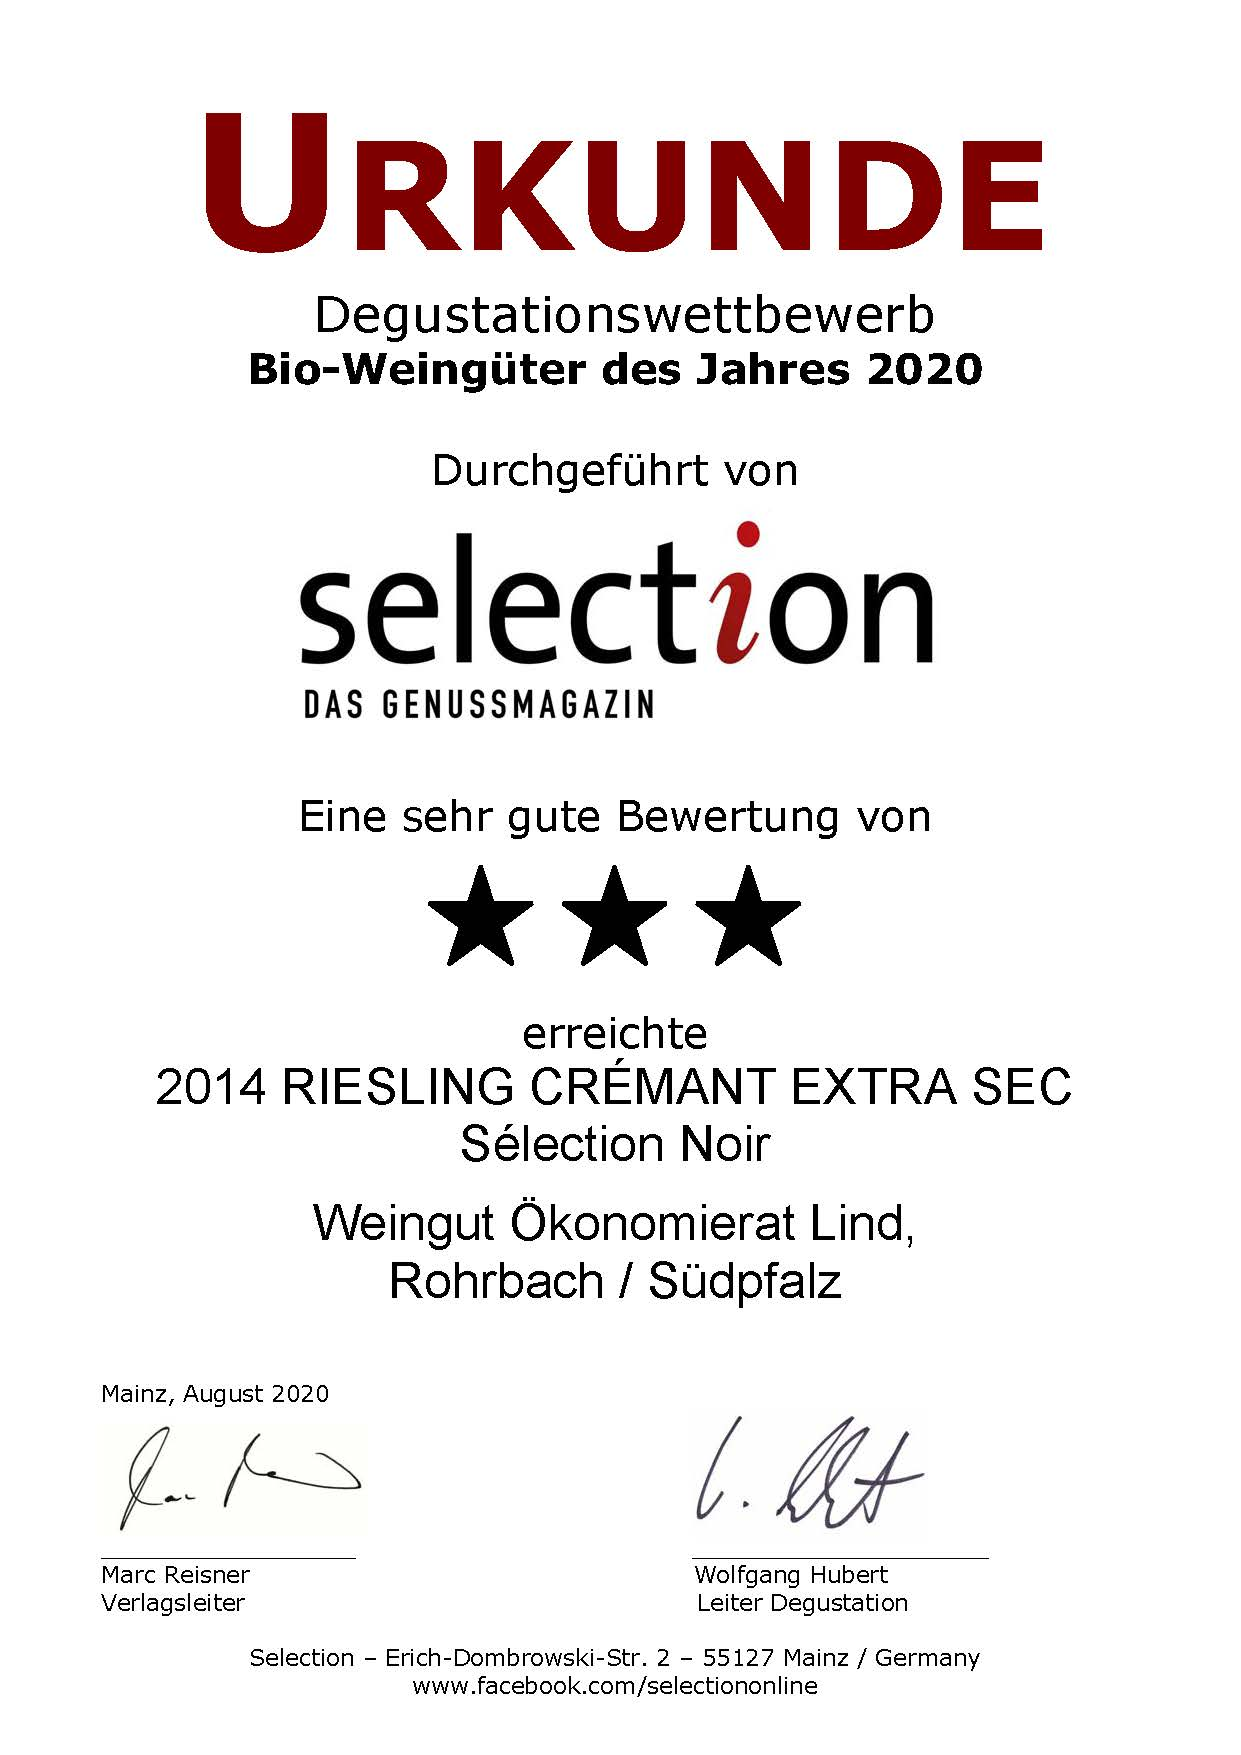 Nr. 31 - RIESLING CRÉMANT EXTRA SEC - 3 Sterne